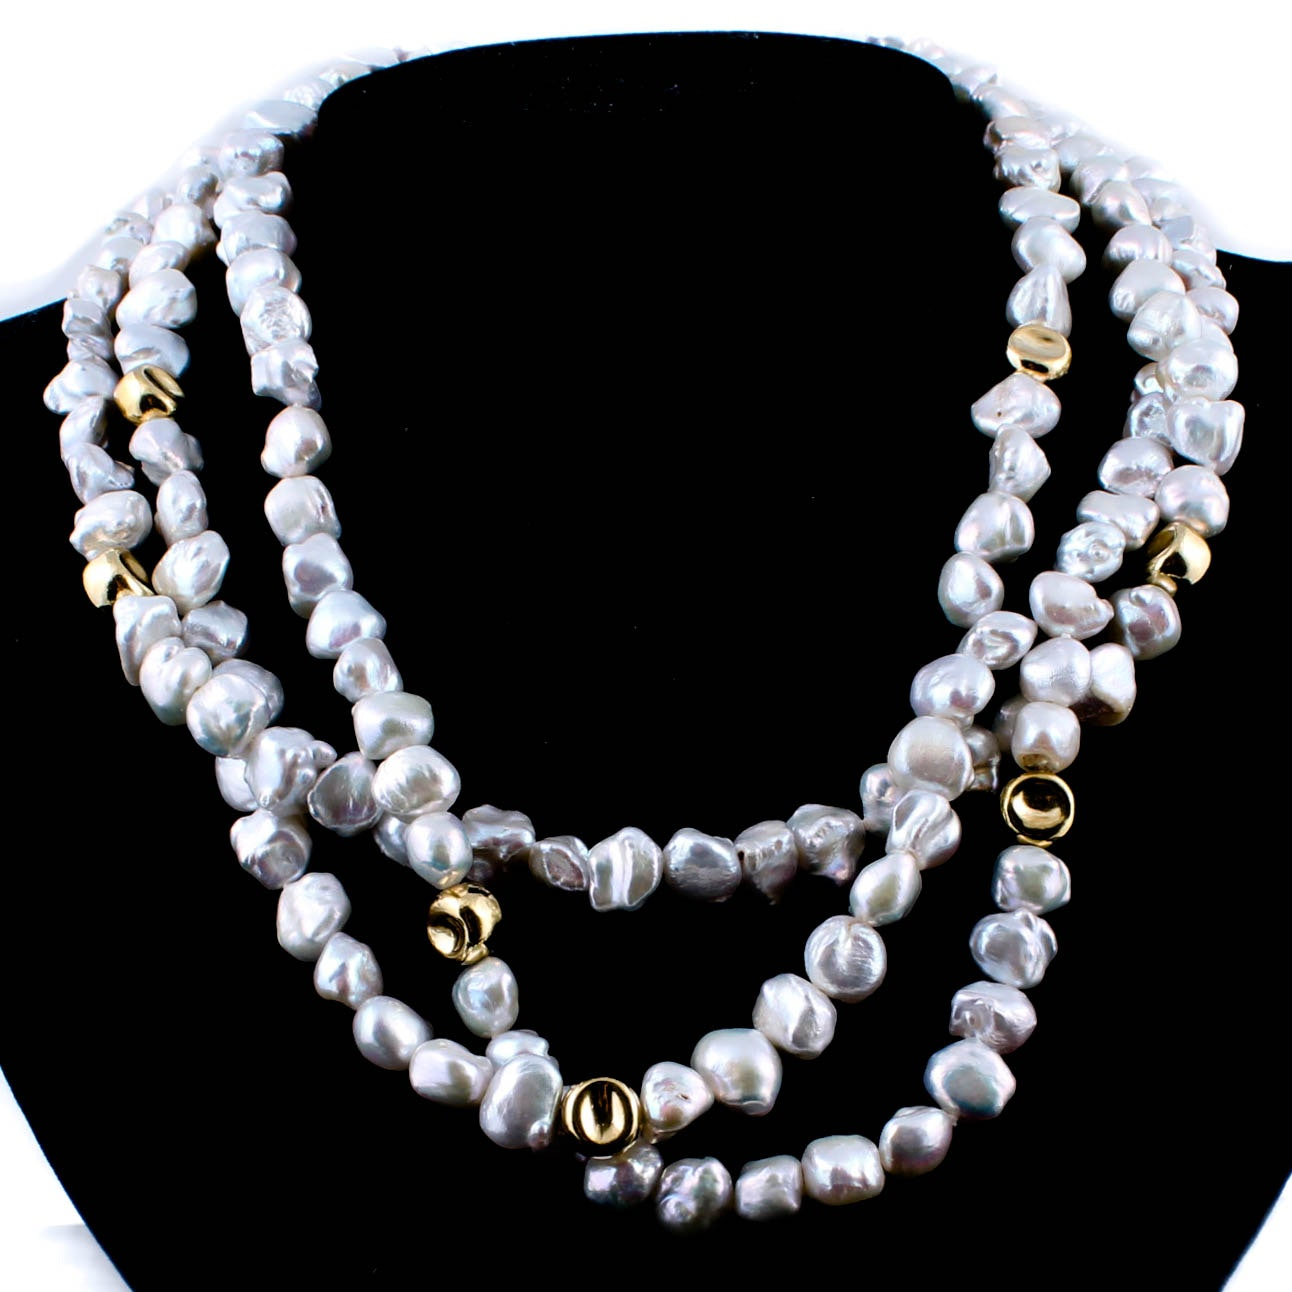 Sterling Silver with Gold Wash and Cultured Freshwater Pearl Necklace